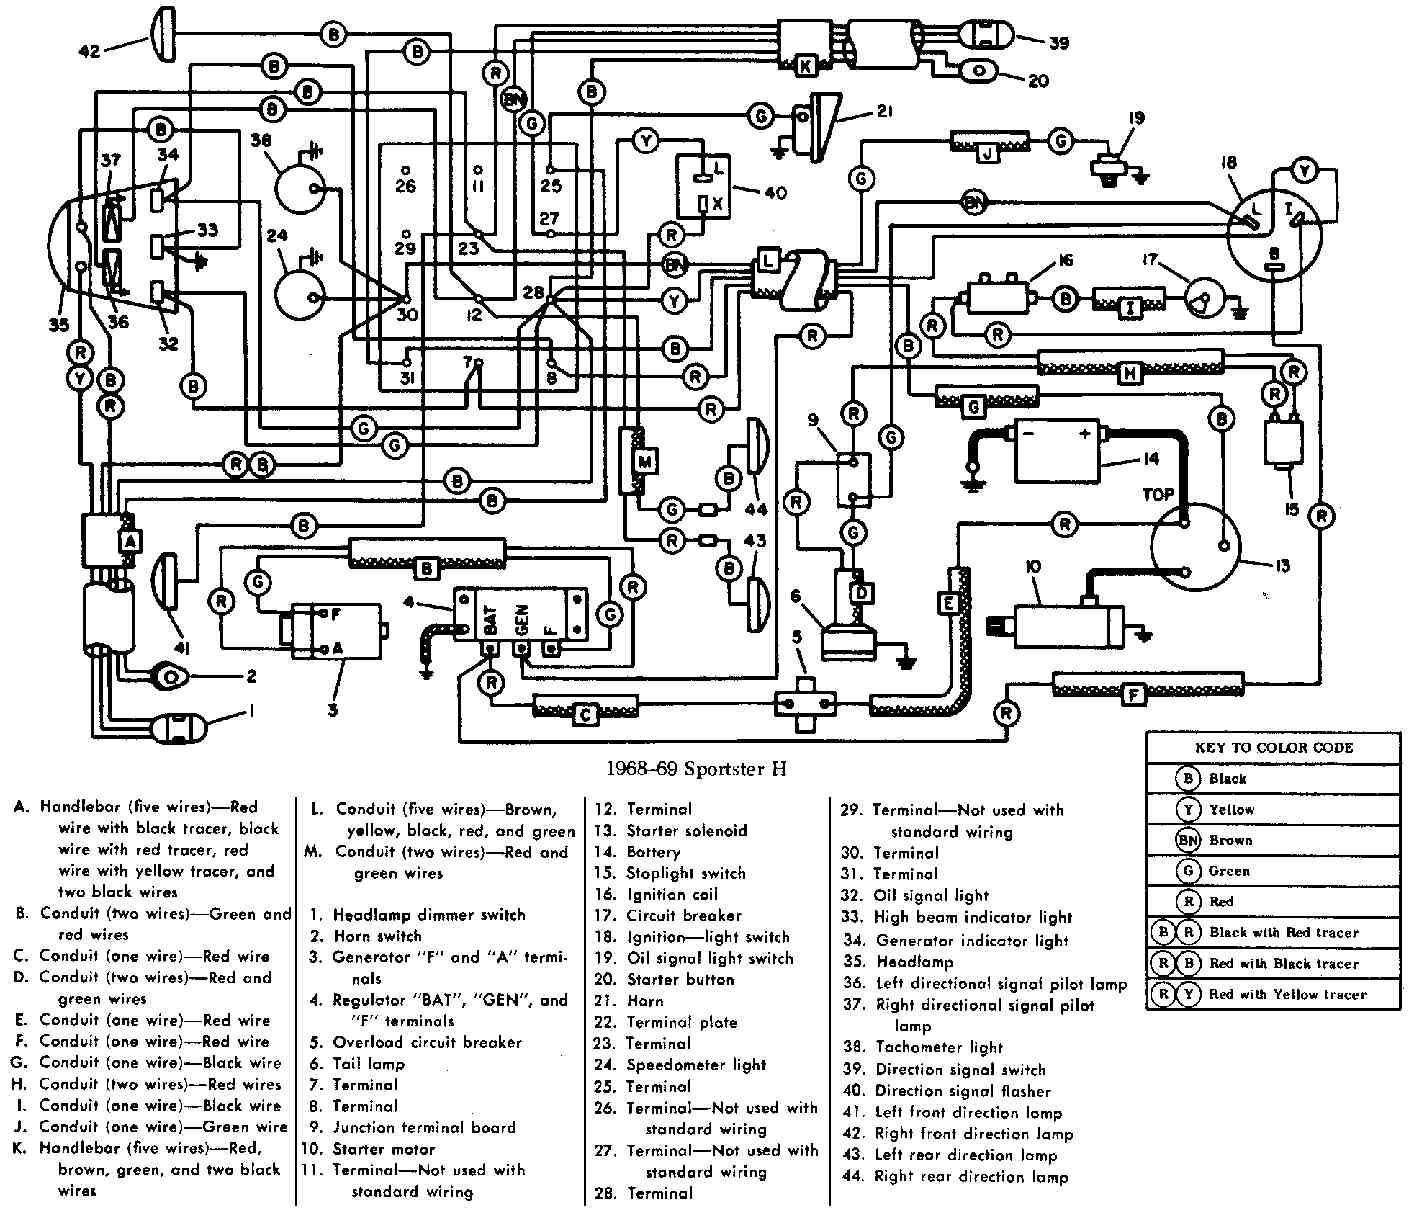 1990 Harley Fxstc Wiring Diagram | Wiring Diagram on